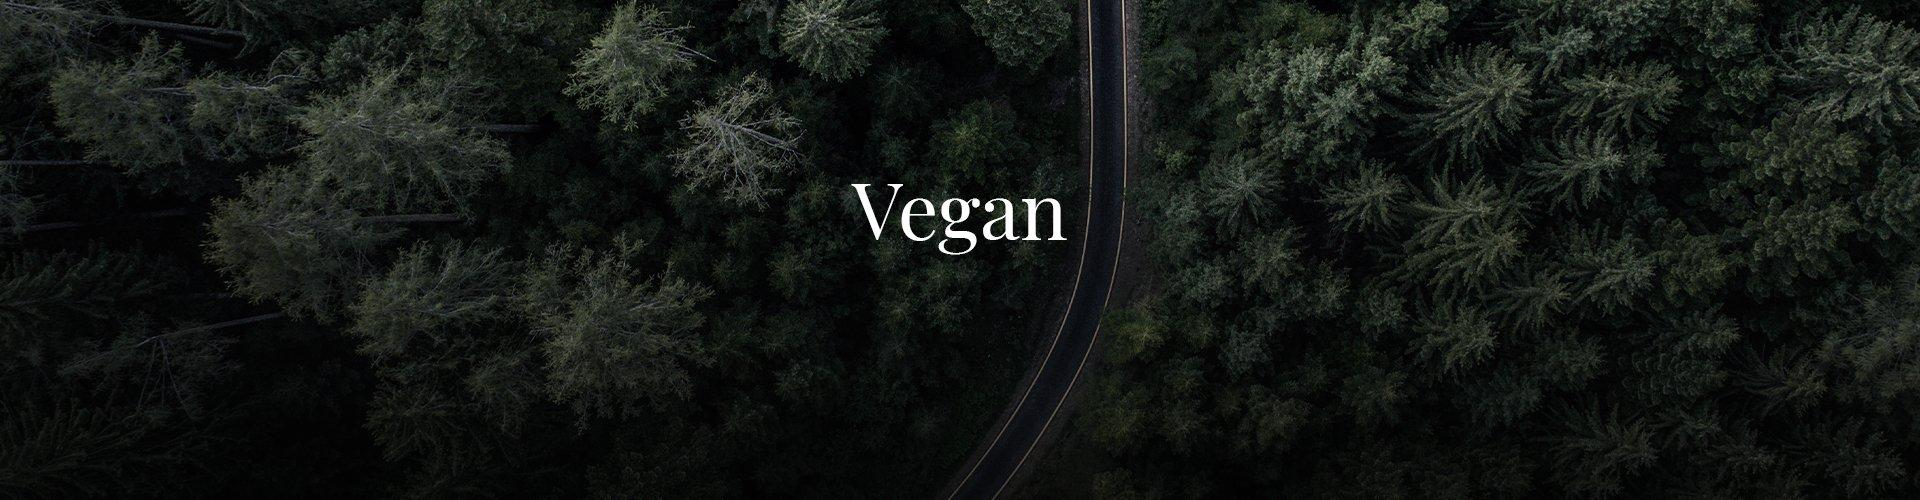 An aerial image of a forest with a road running through the middle with text saying vegan.